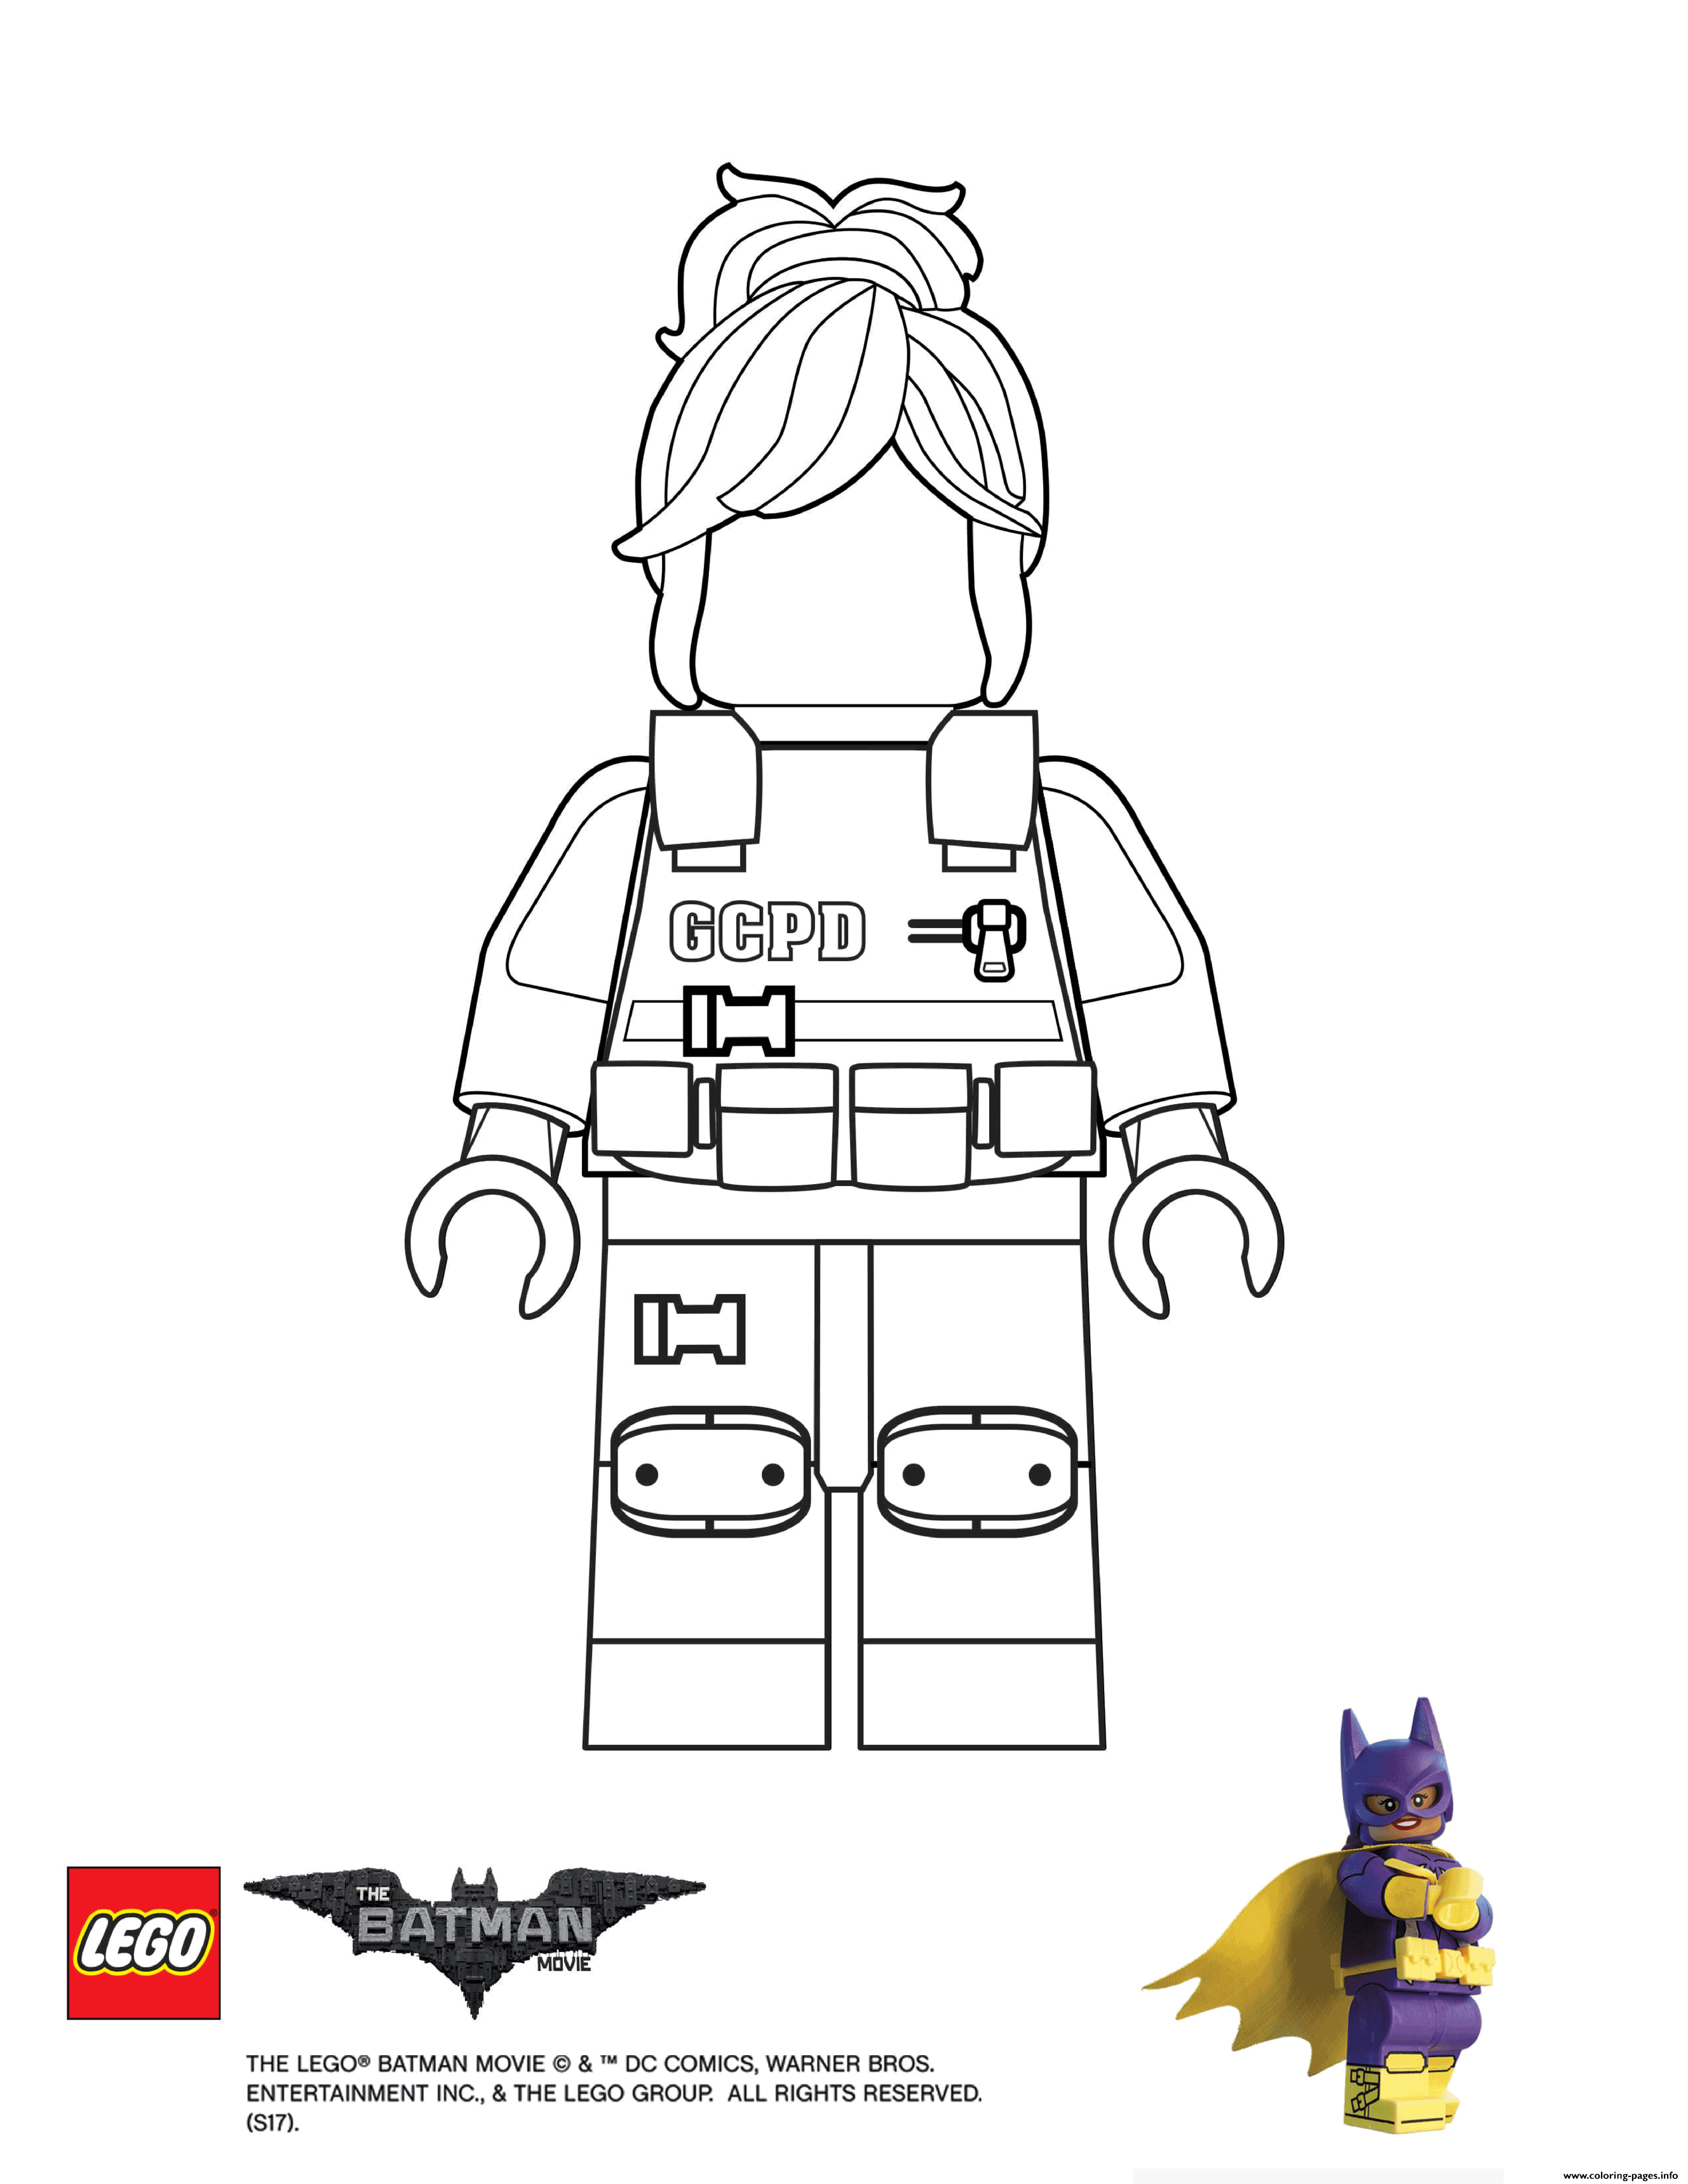 BarbGor Lego Batman Movie coloring pages